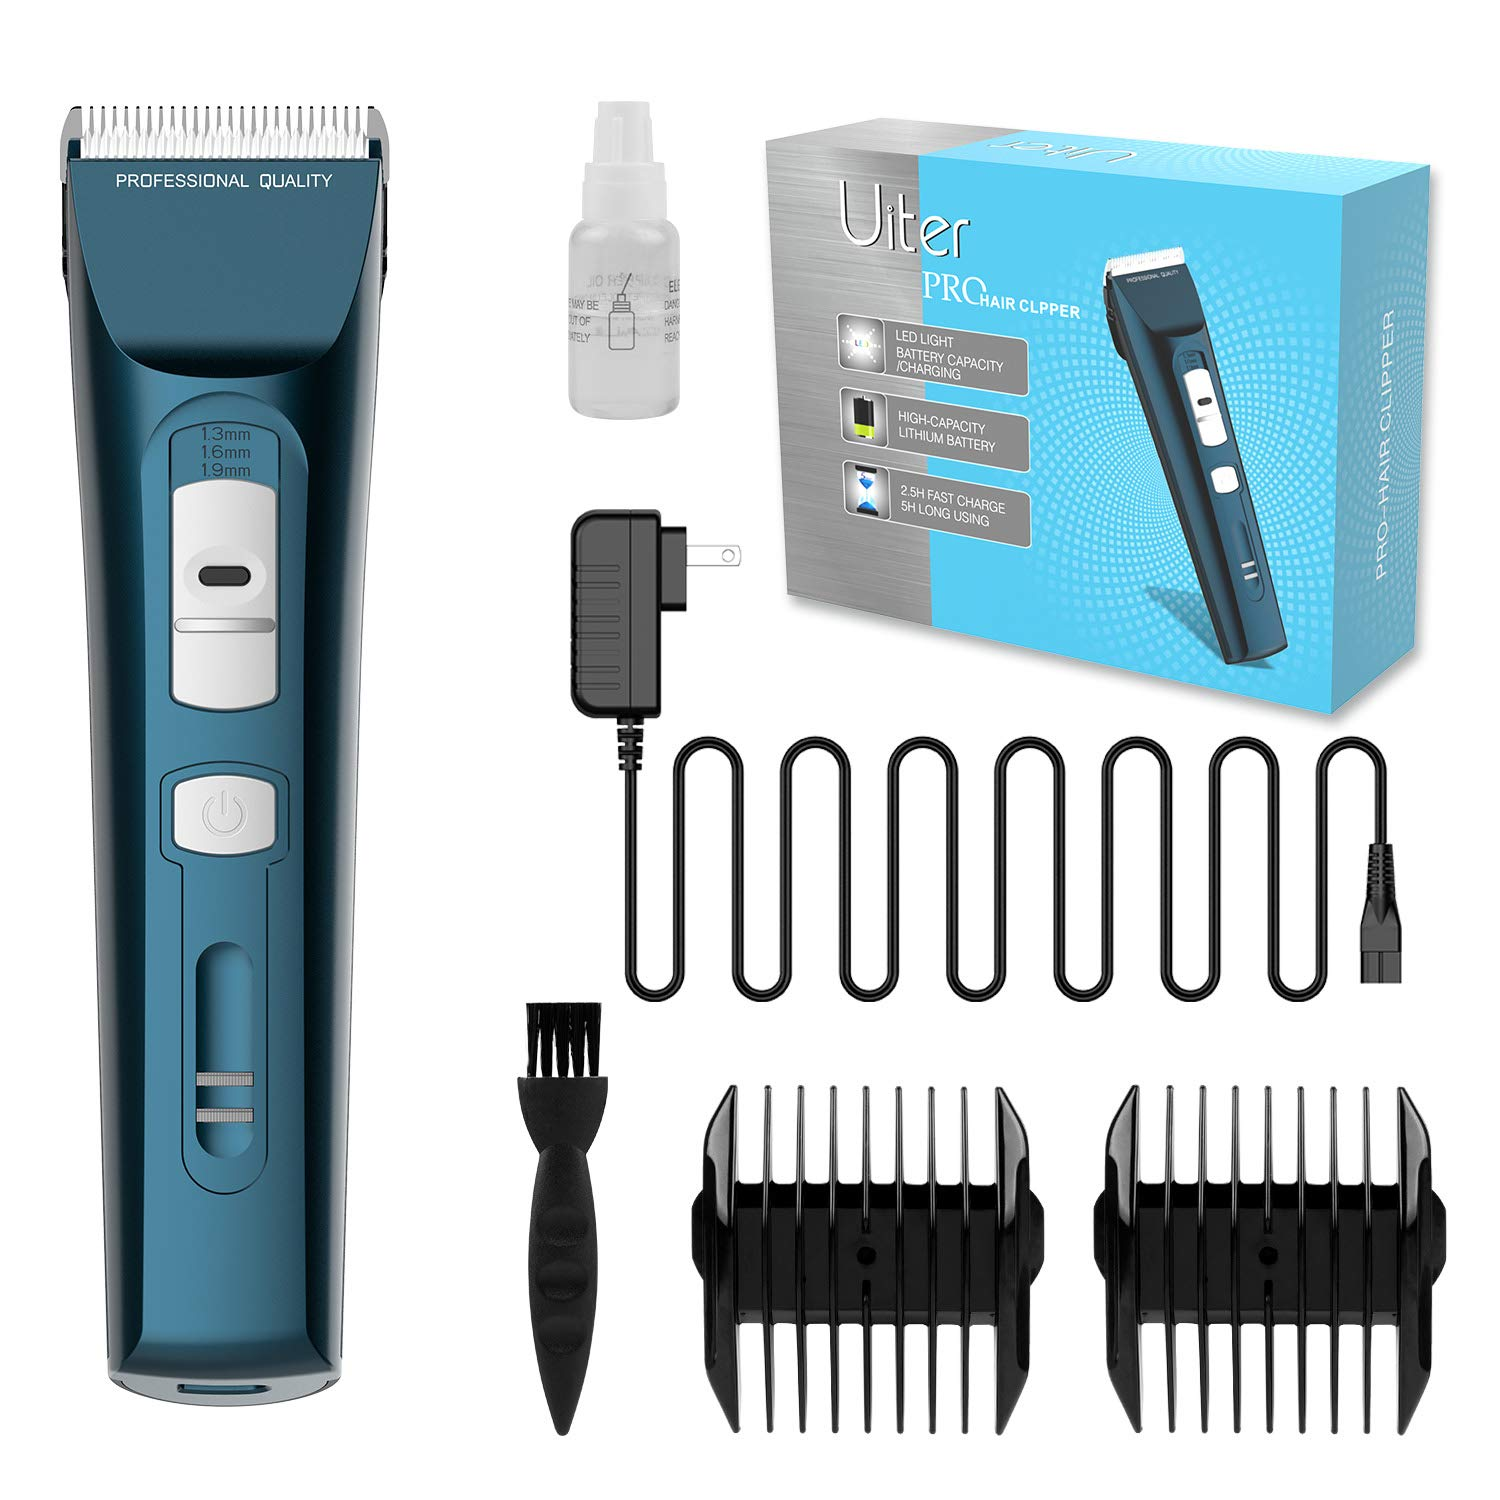 Uiter Clippers for Hair Cutting  5 Hour Long Life Battery Complete Hair Cutting Kit for Men Women